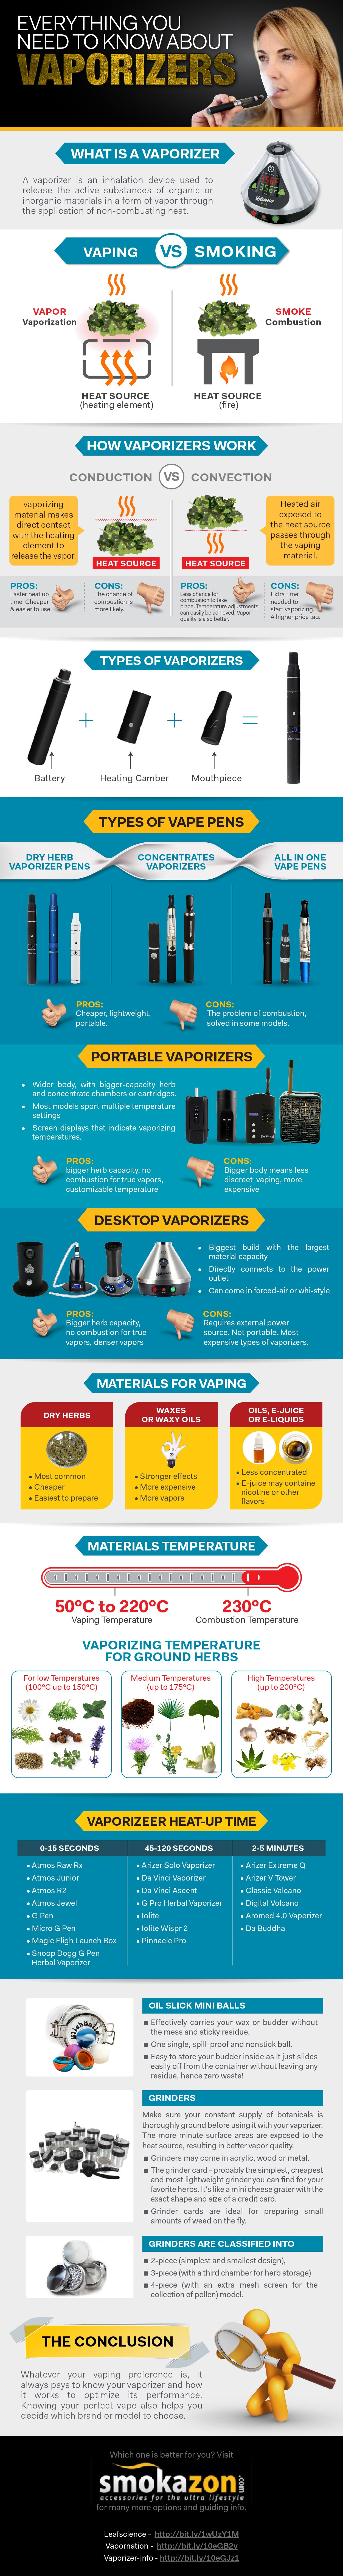 complete-guide-how-to-choose-your-vaporizer-design.jpg